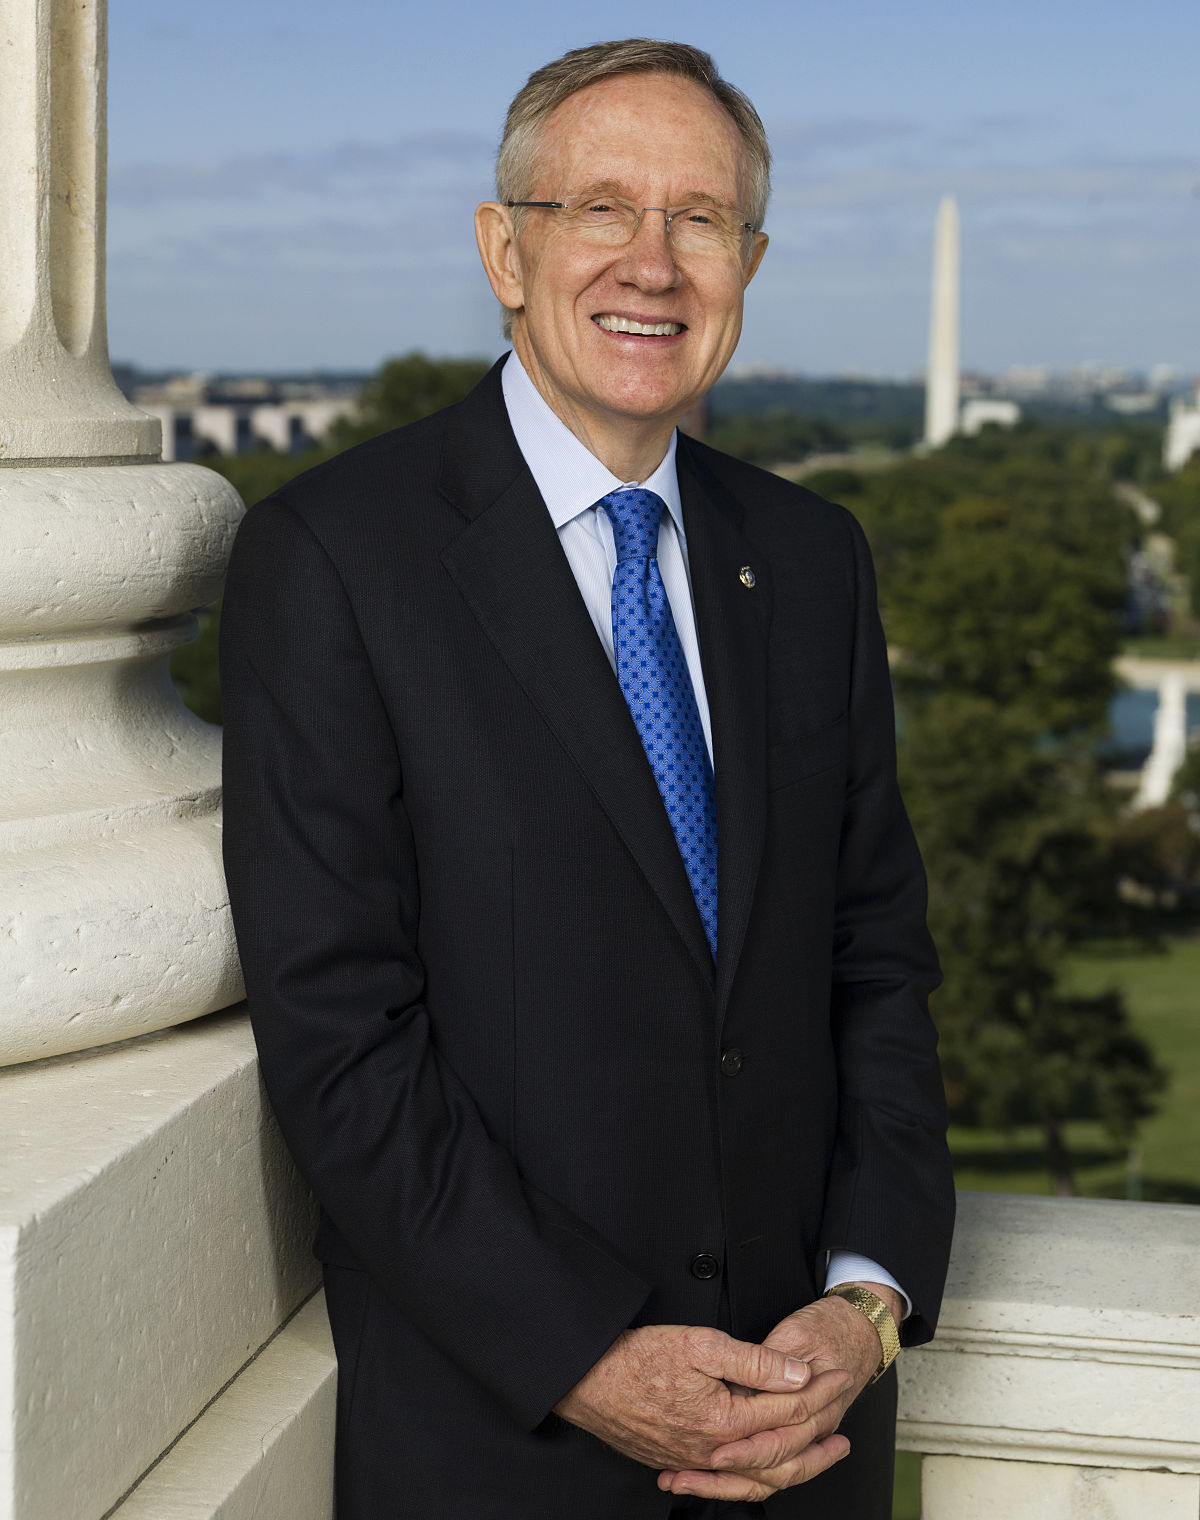 Harry Reid official portrait 2009.jpg